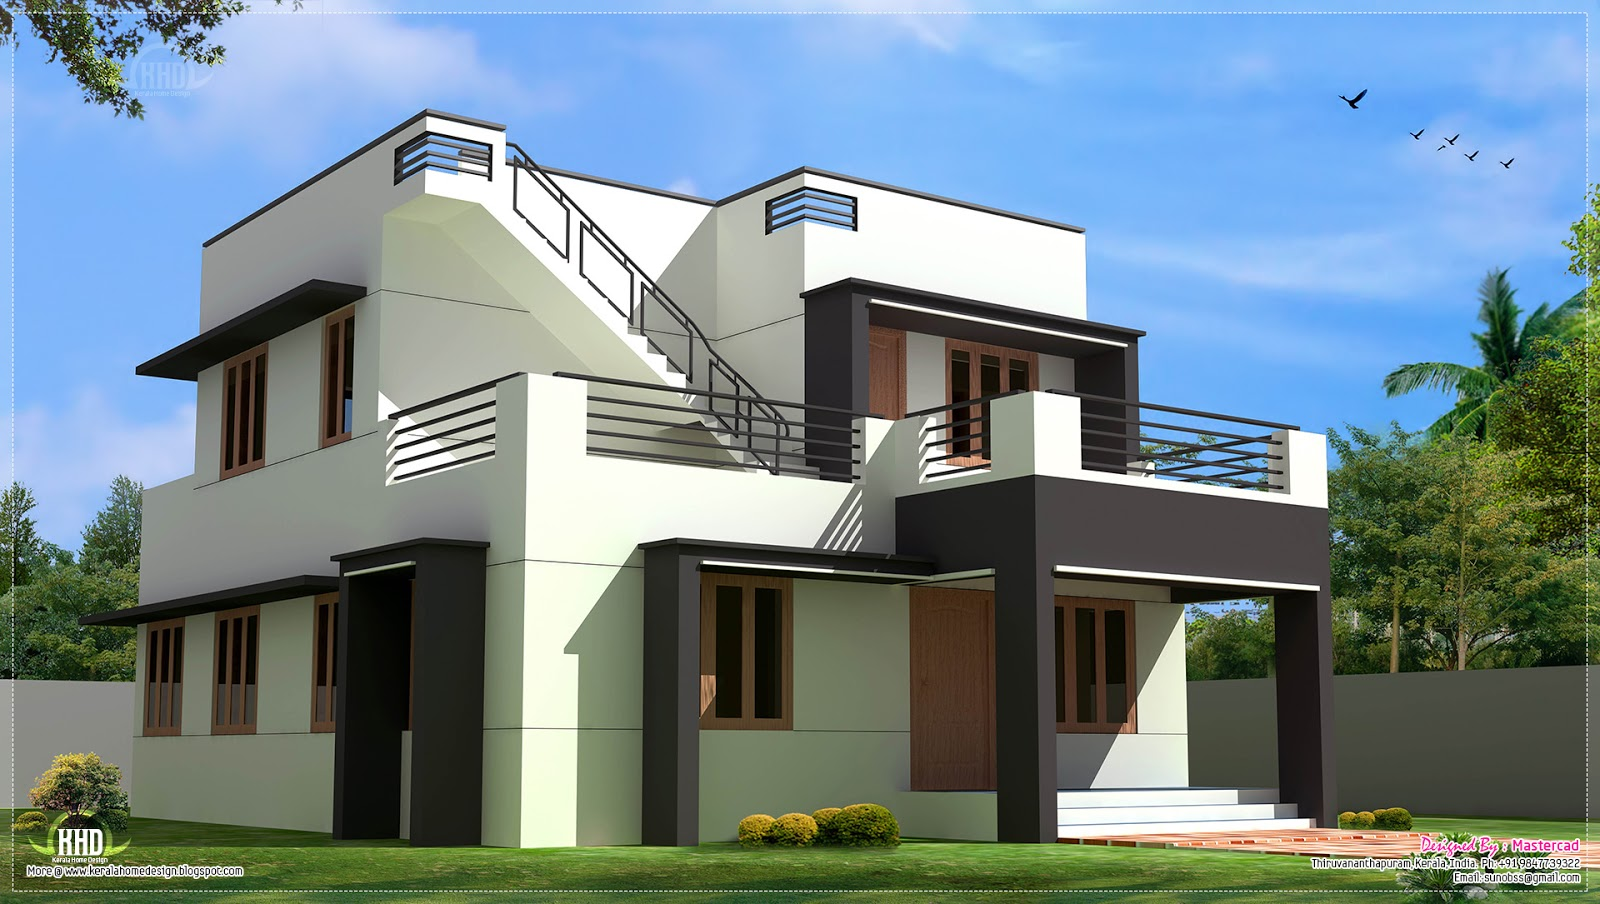 Modern house design in 1700 sq feet house design plans